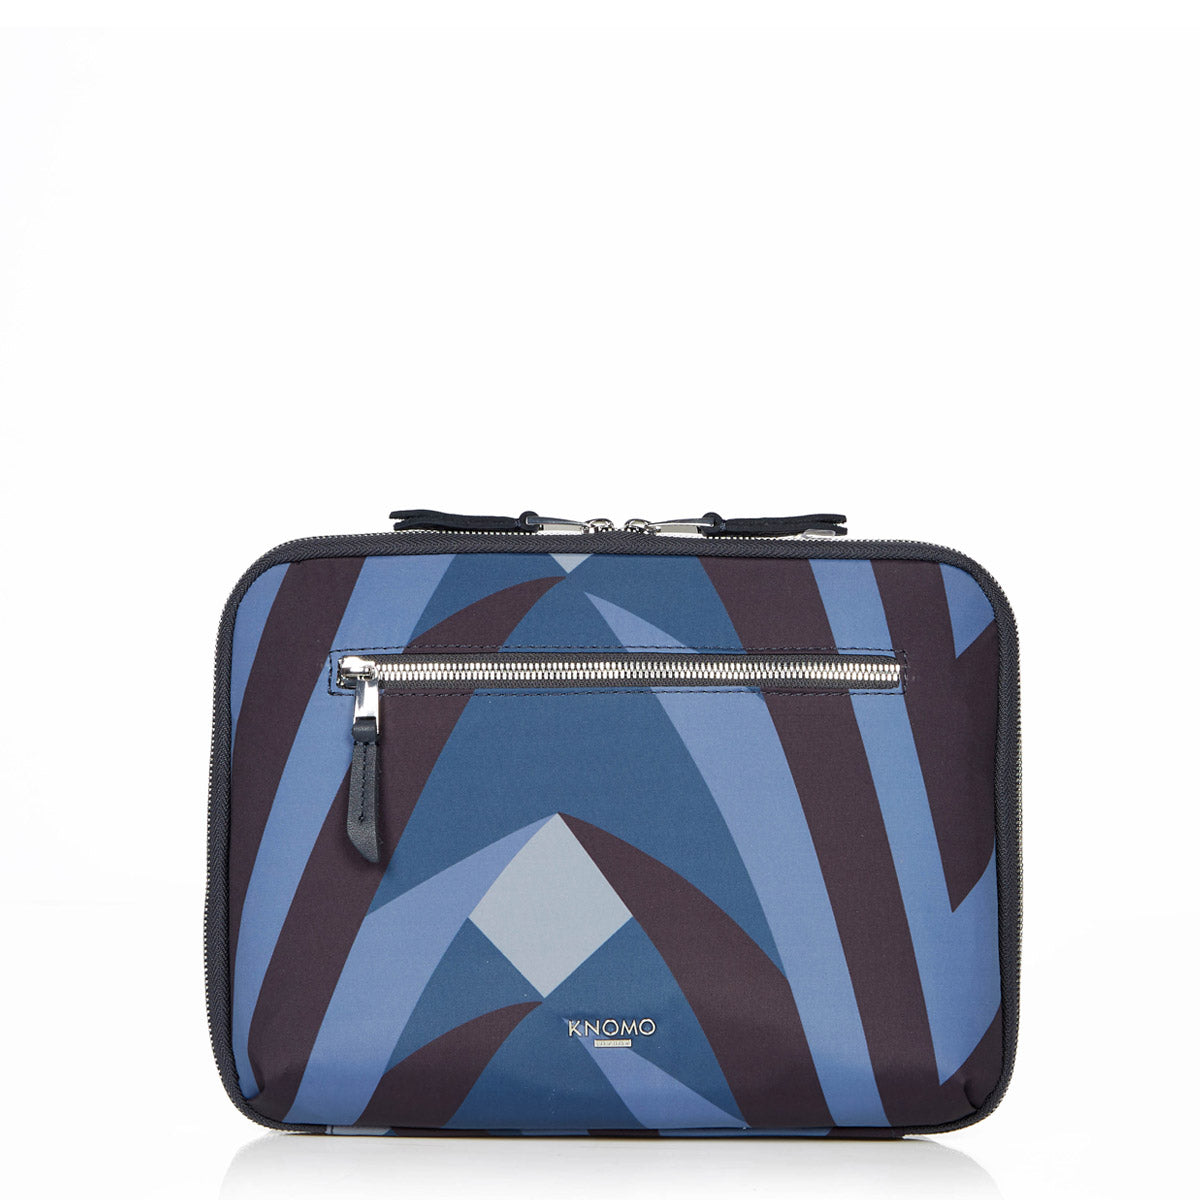 "Mayfair Knomad Organizer - 10.5"" Knomad Organizer - 10.5"" (V&A Exclusive) -  10.5""  